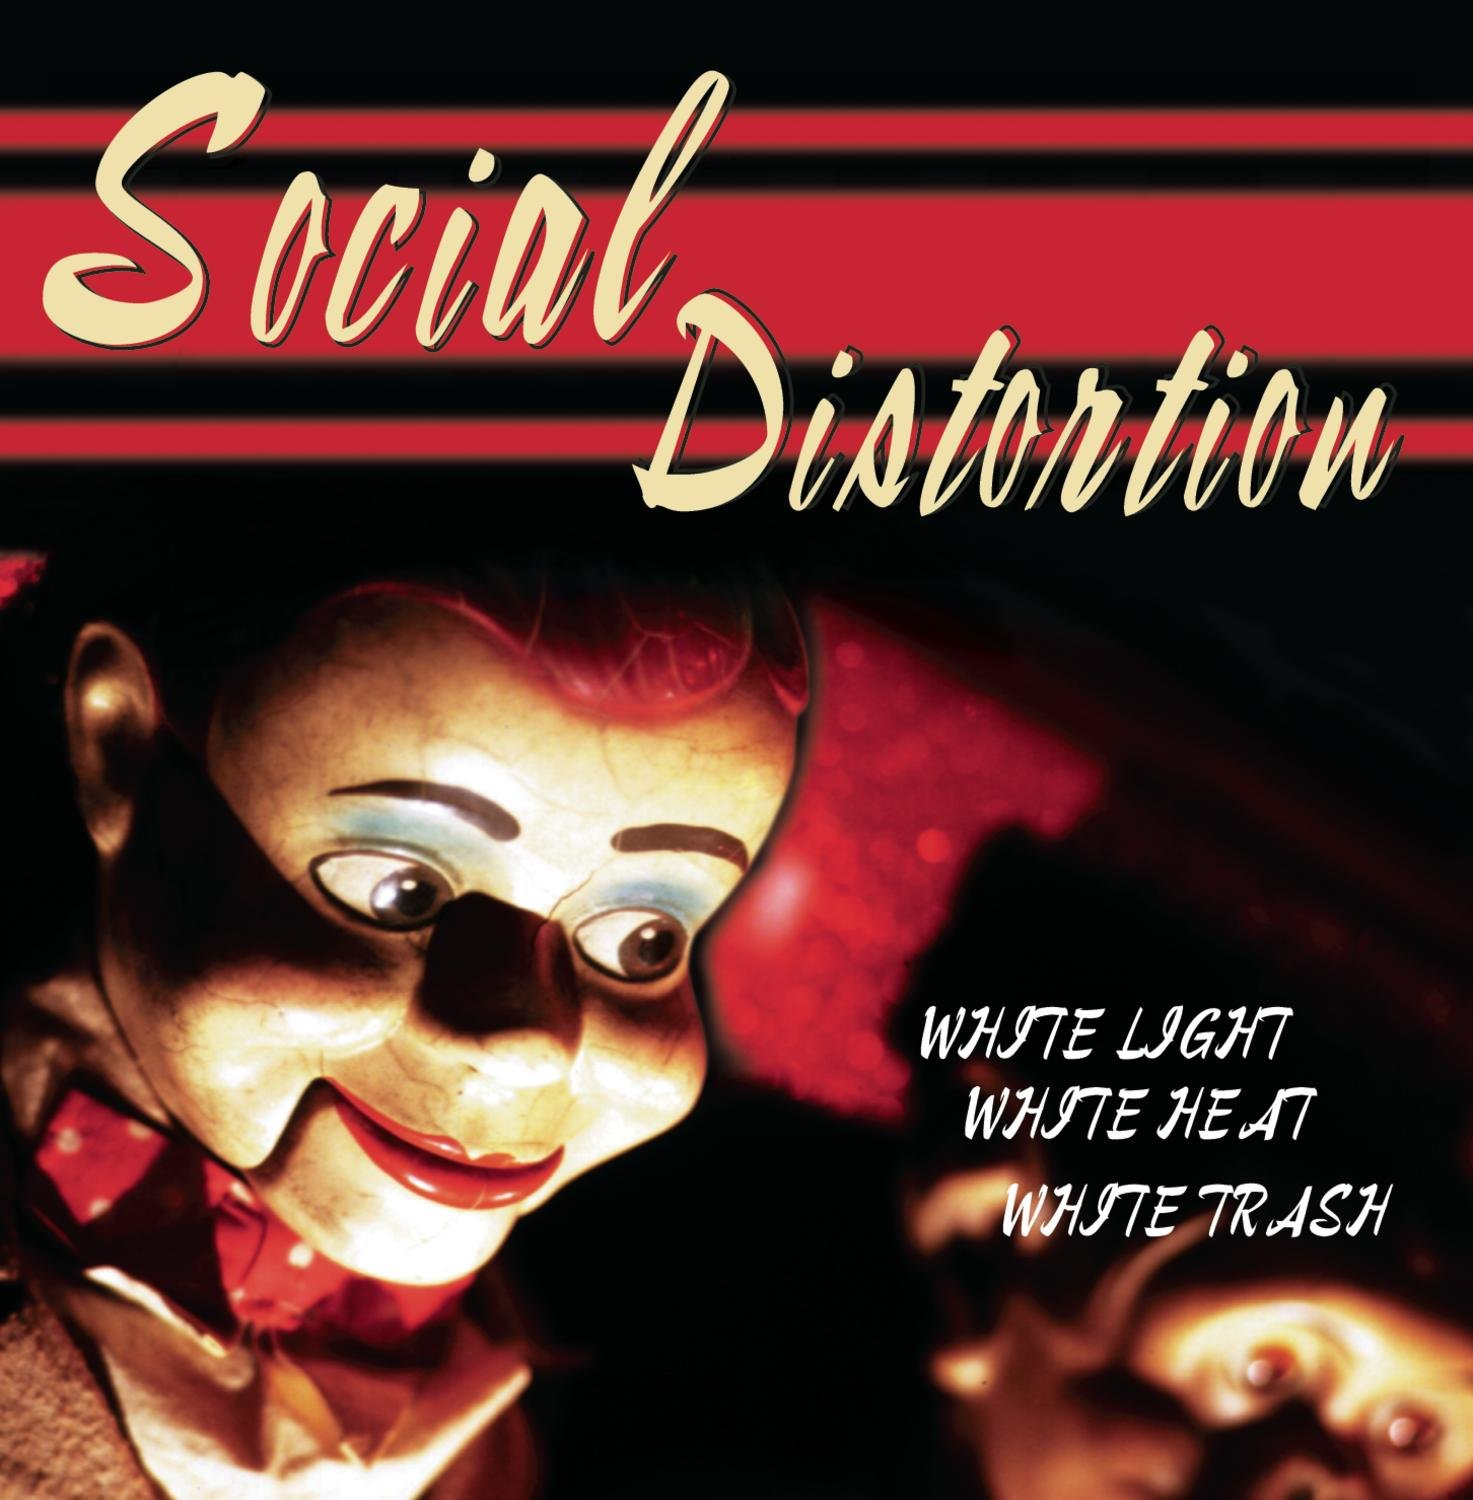 social distortion hard times and nursery rhymes torrent download